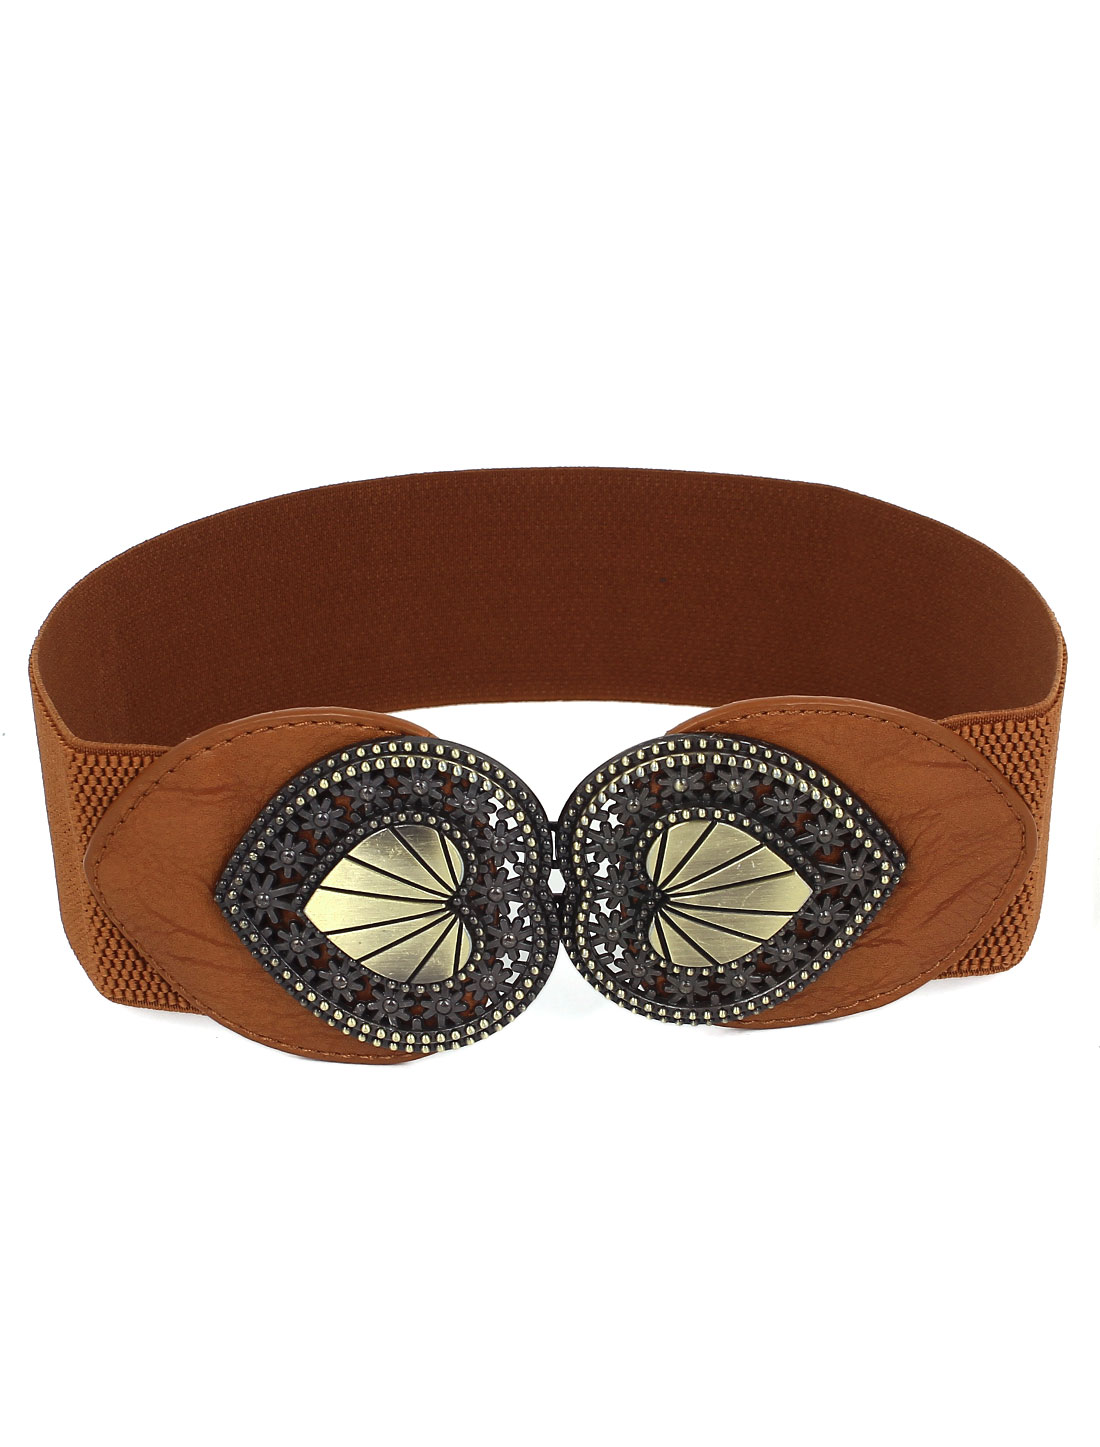 Women Double Heart Design Metal Interlock Buckle Faux Leather Stretch Waist Belt Band Waistband Brown